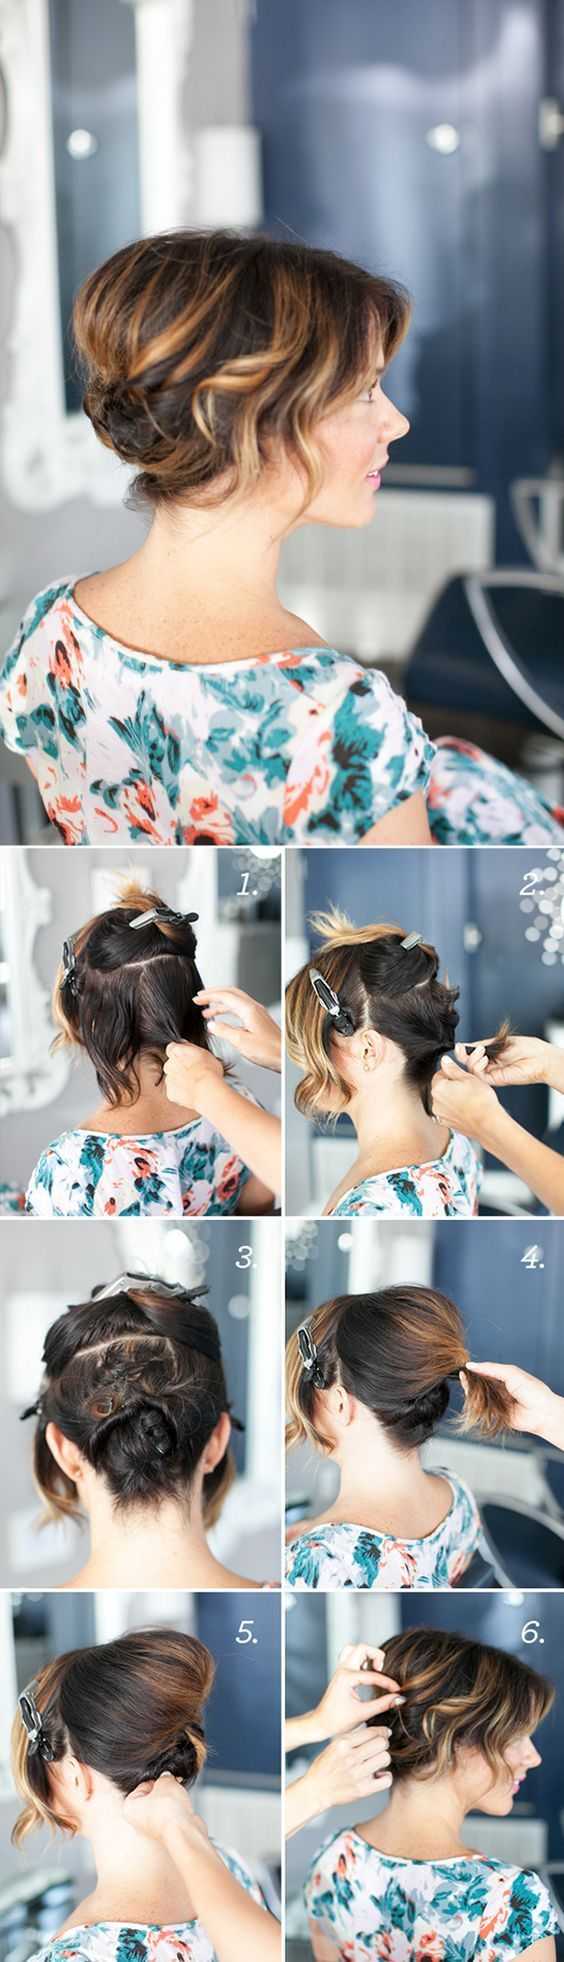 Diy hairstyle super easy hairstyle tutorial you could try easy